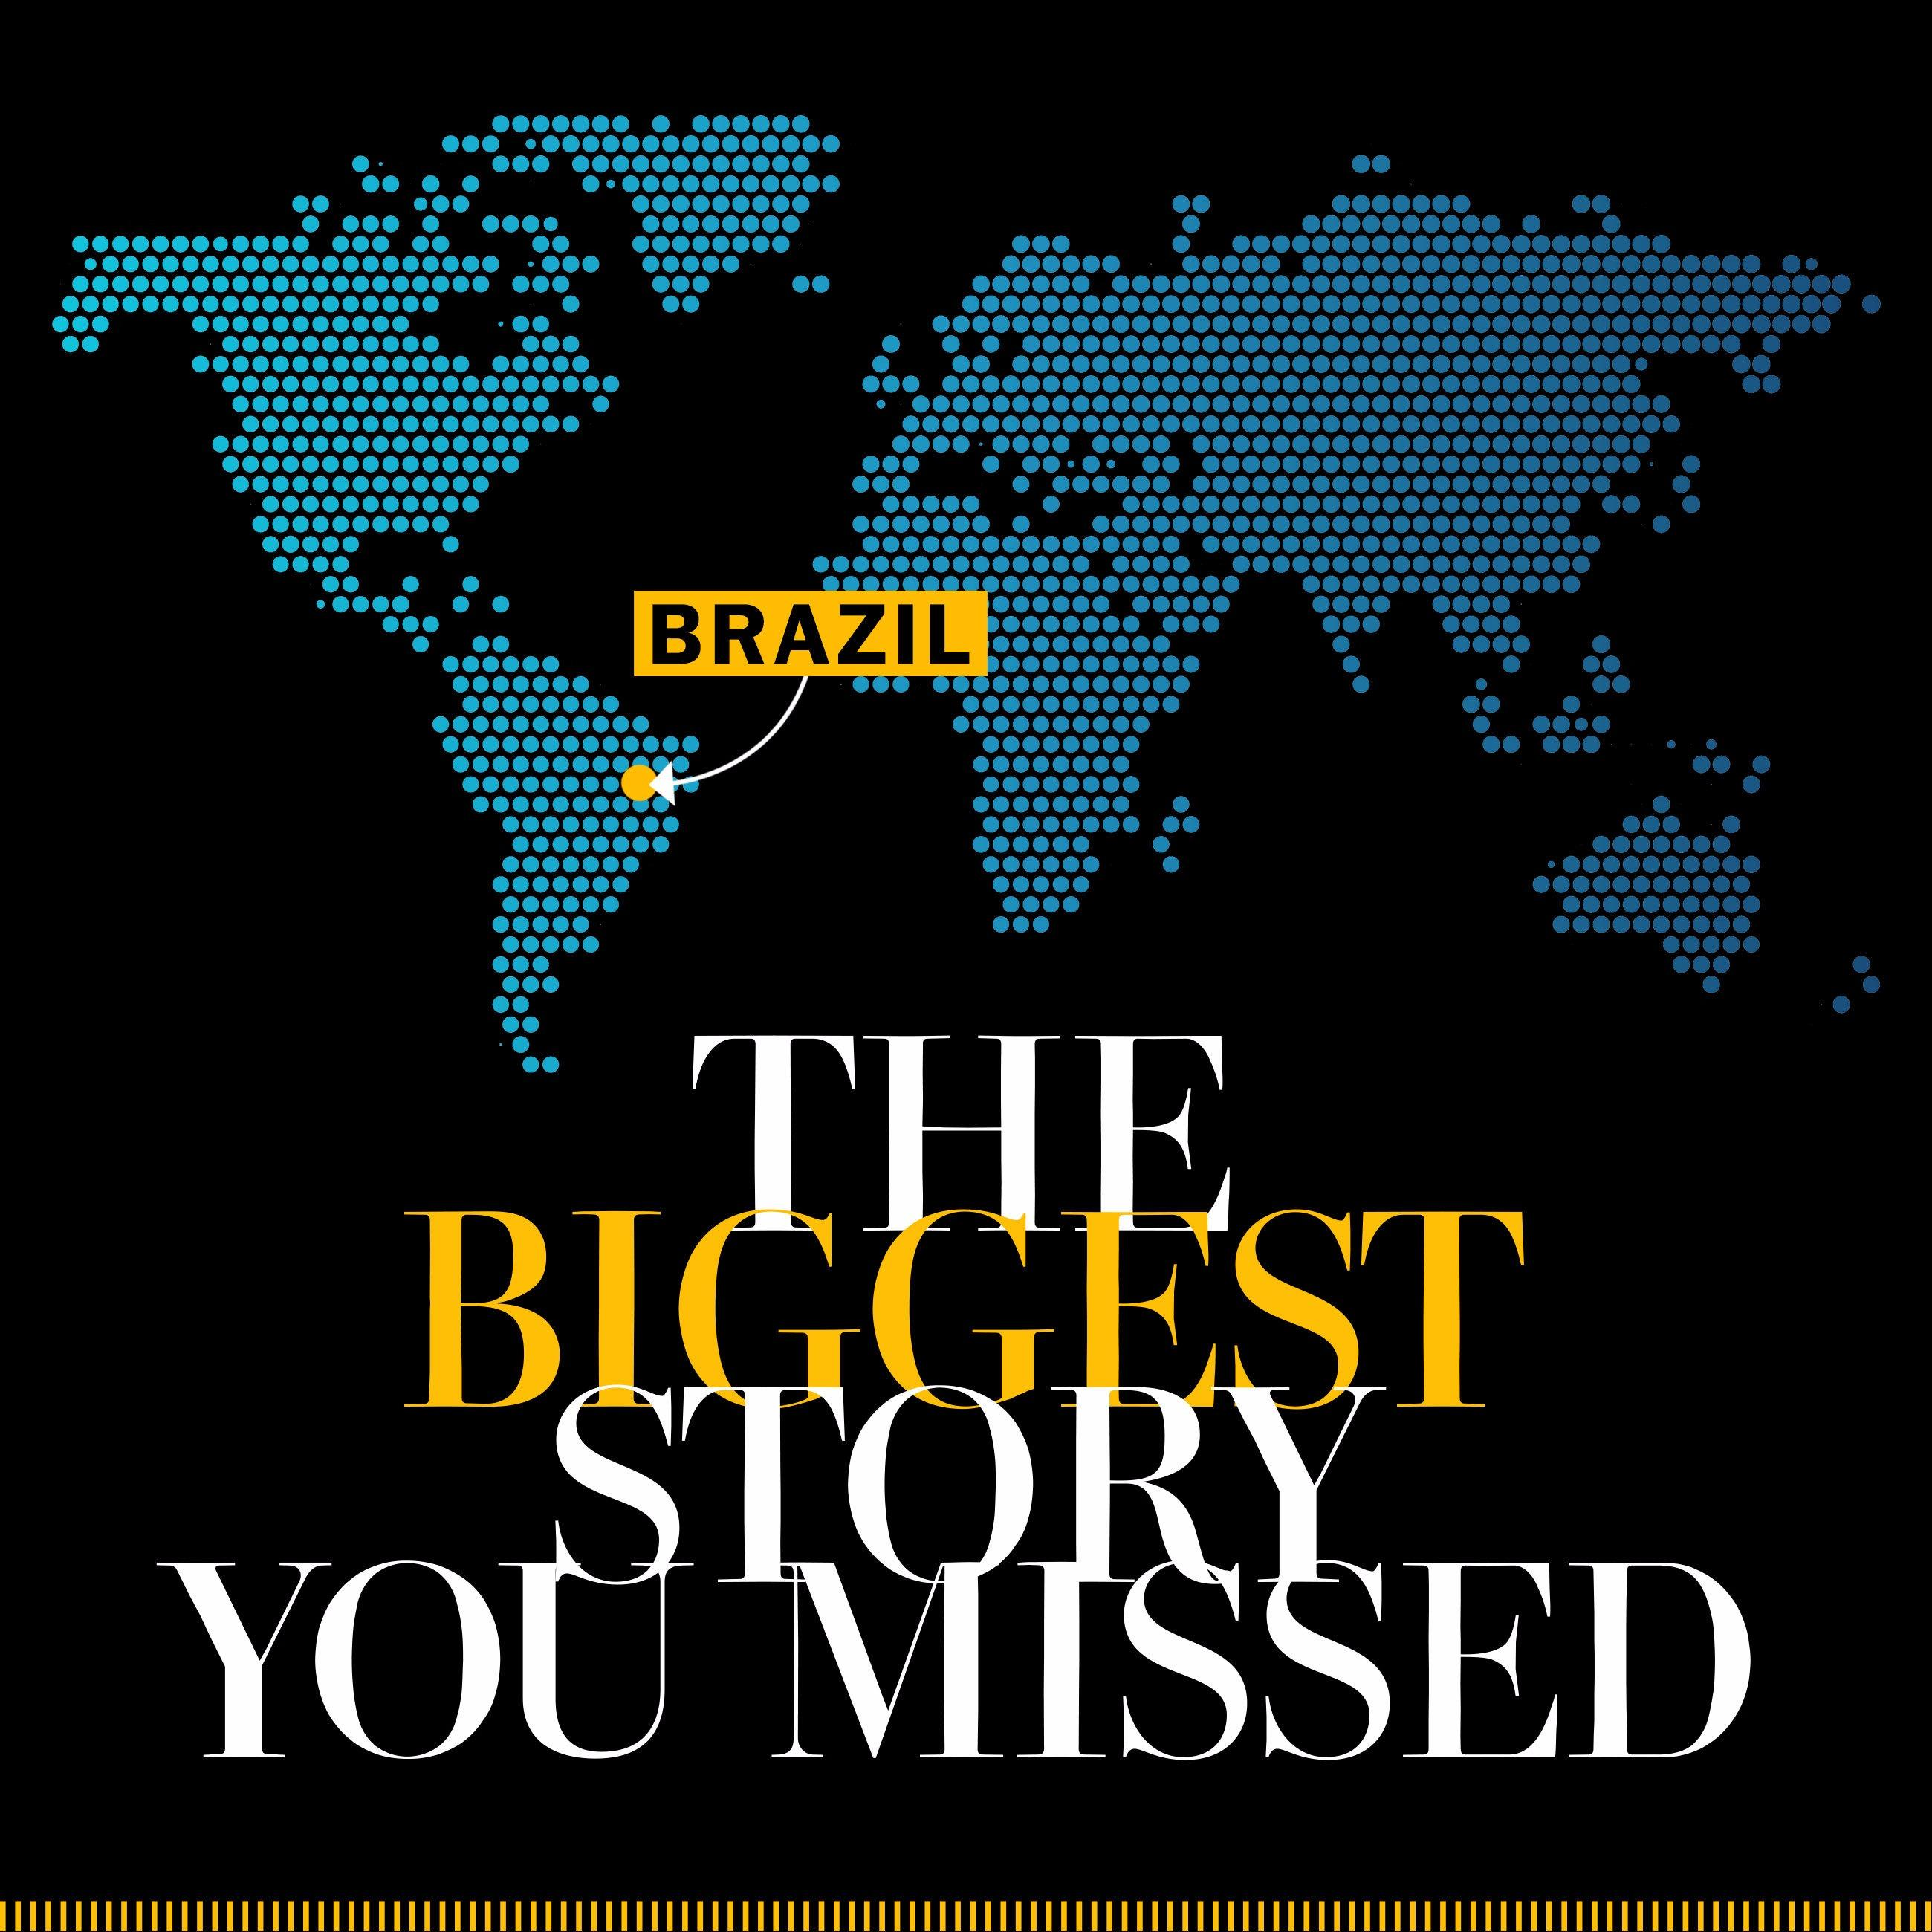 Biggest story you missed: Brazil is in trouble, and the Olympics are just months away